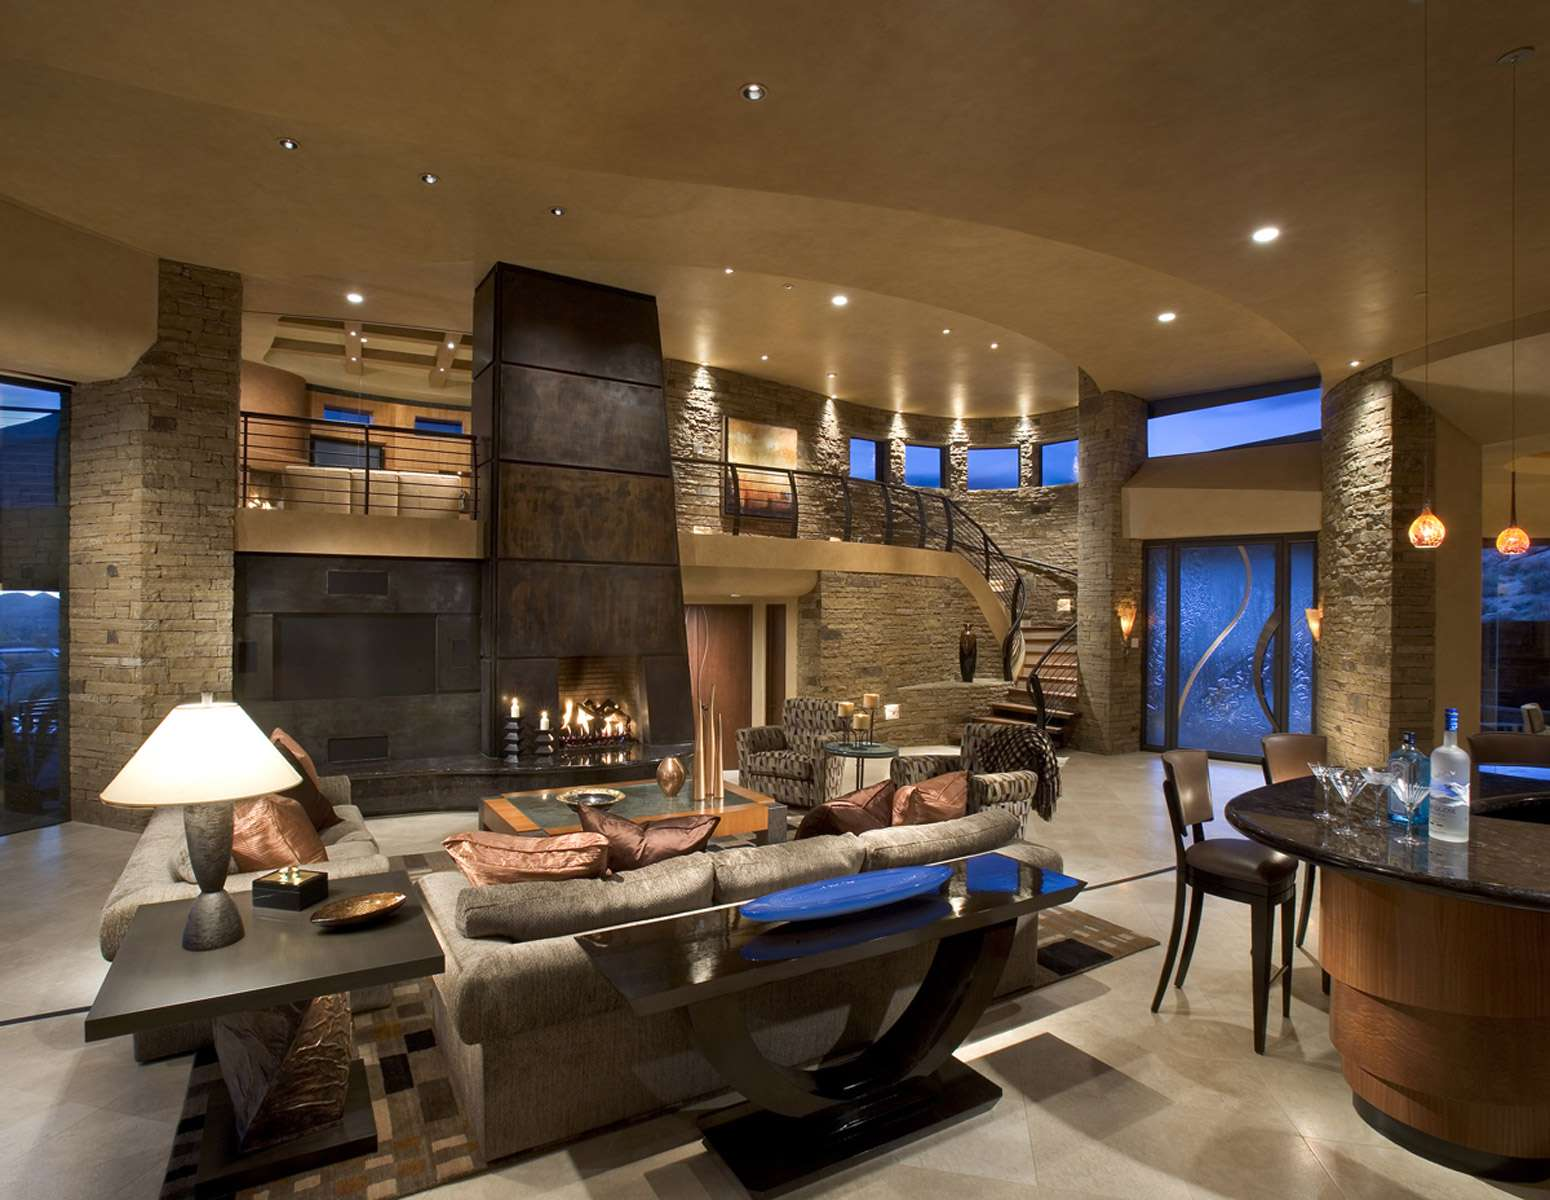 Sleek Flowing Contemporary Home Hugs Desert Floor Blending